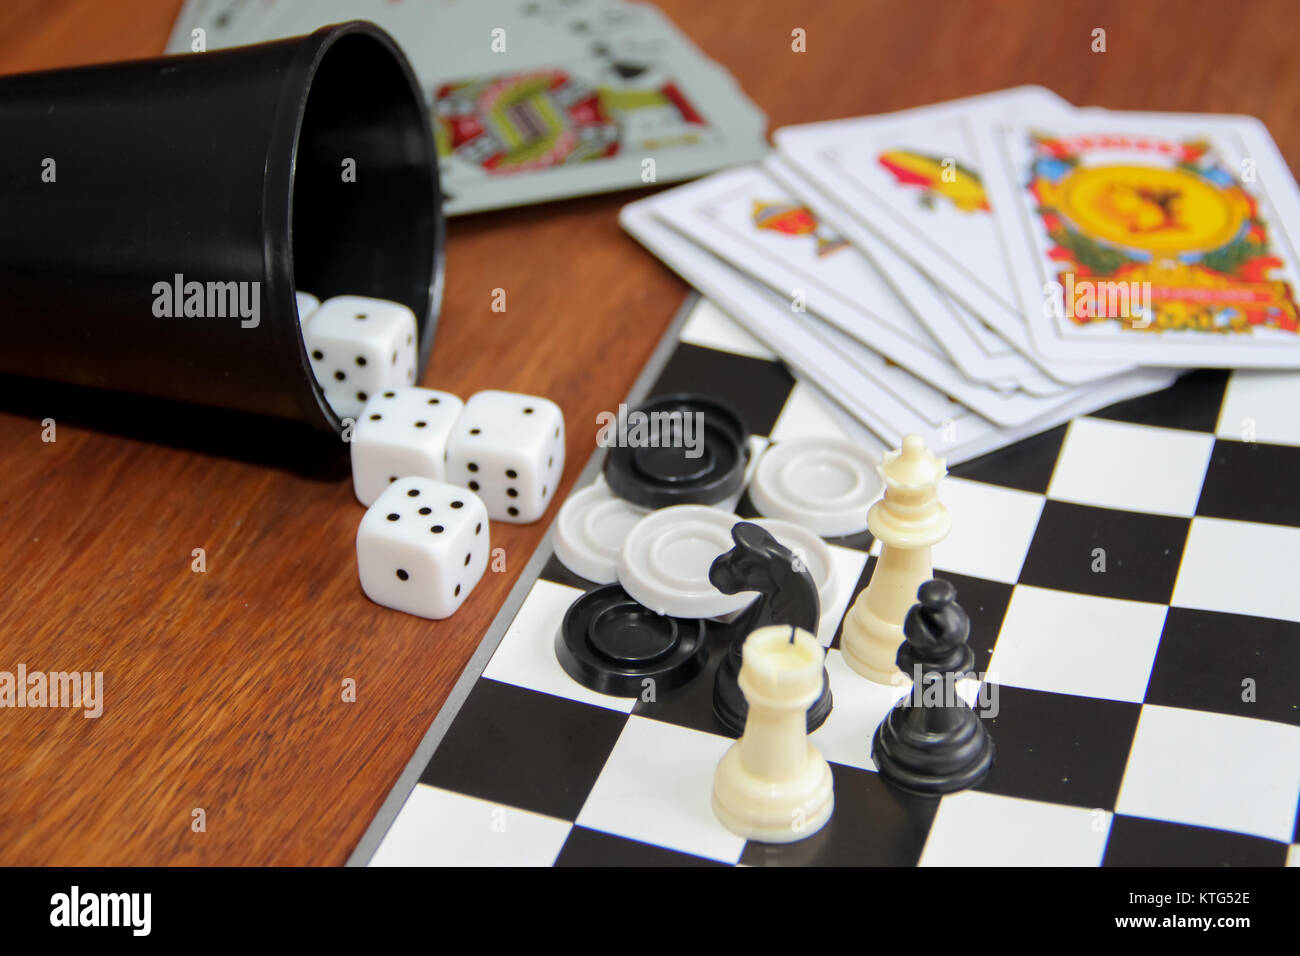 mix of goblet table games dice spanish poker cards chess and checkers Stock Photo